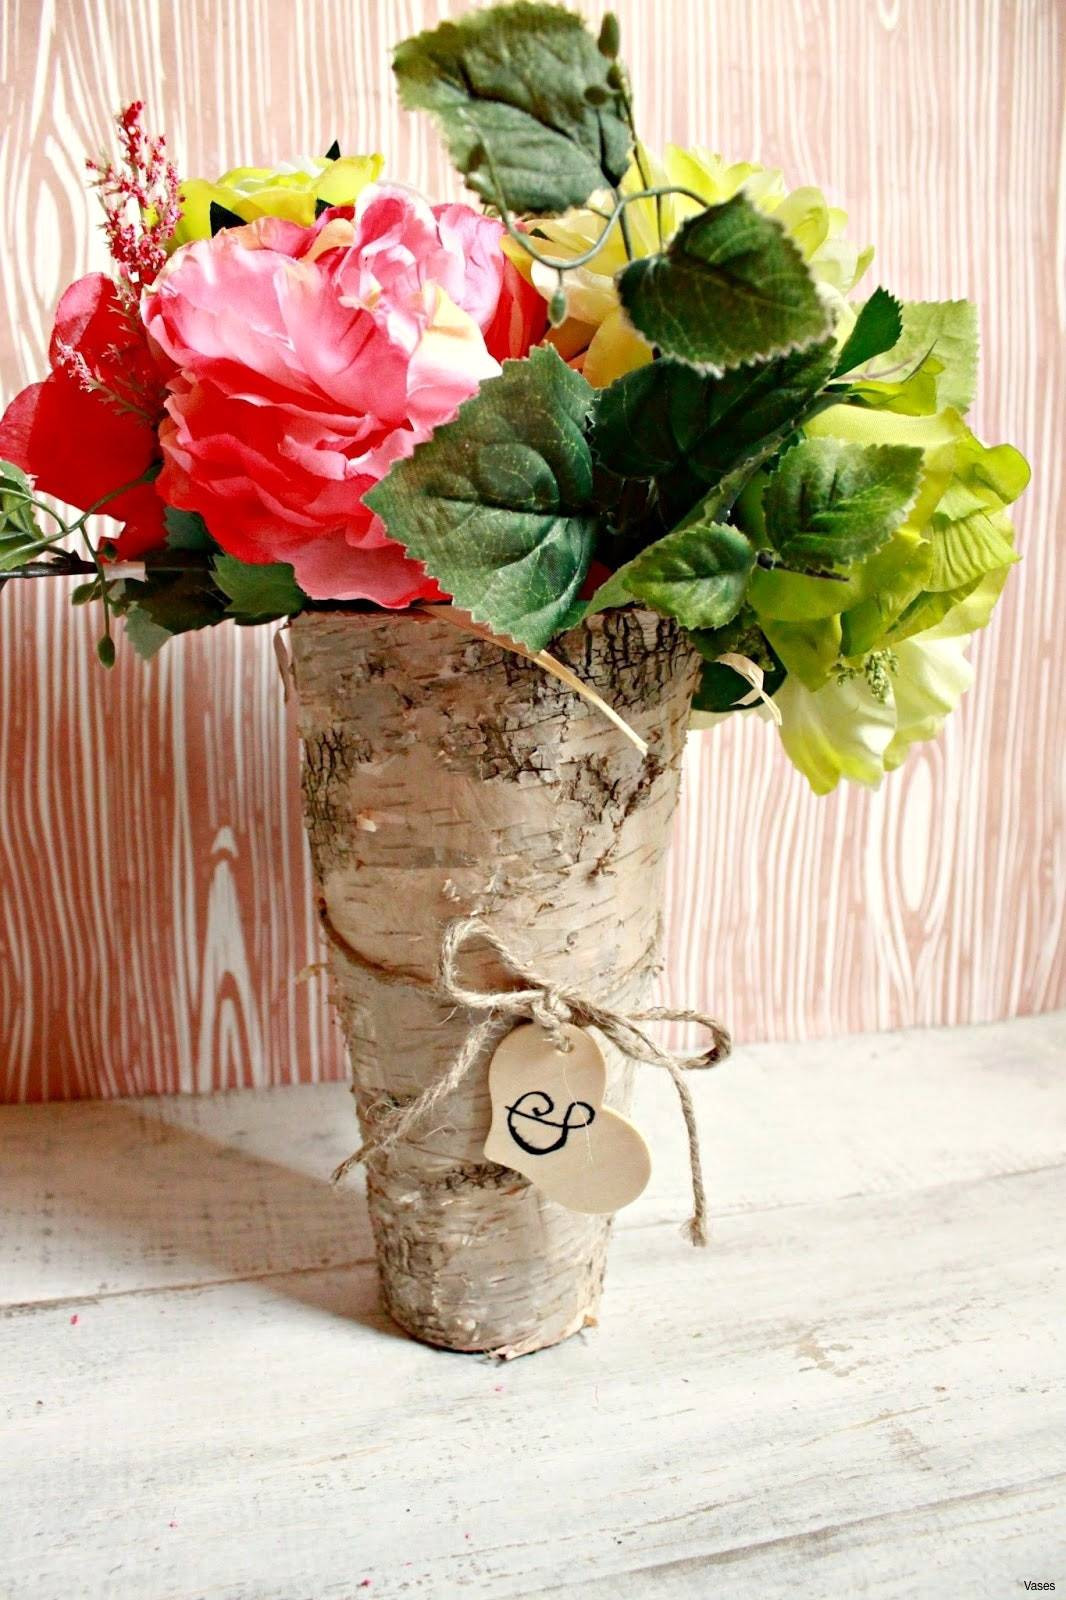 Red Rose Vase Of Red Table Decorations for Weddings New Flowers and Decorations for Regarding Red Table Decorations for Weddings New Flowers and Decorations for Weddings H Vases Diy Wood Vase